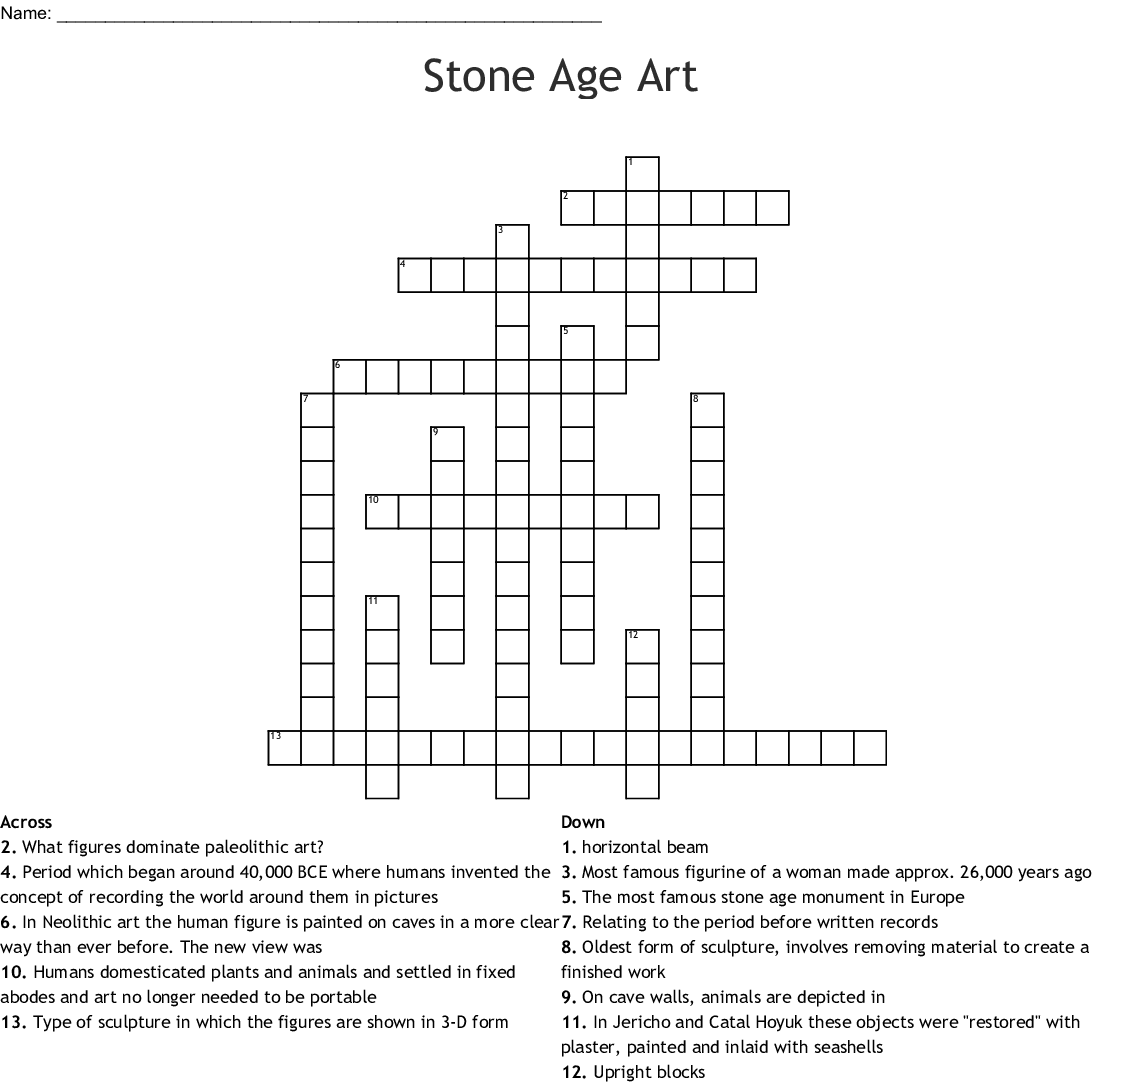 Stone Age Art Crossword